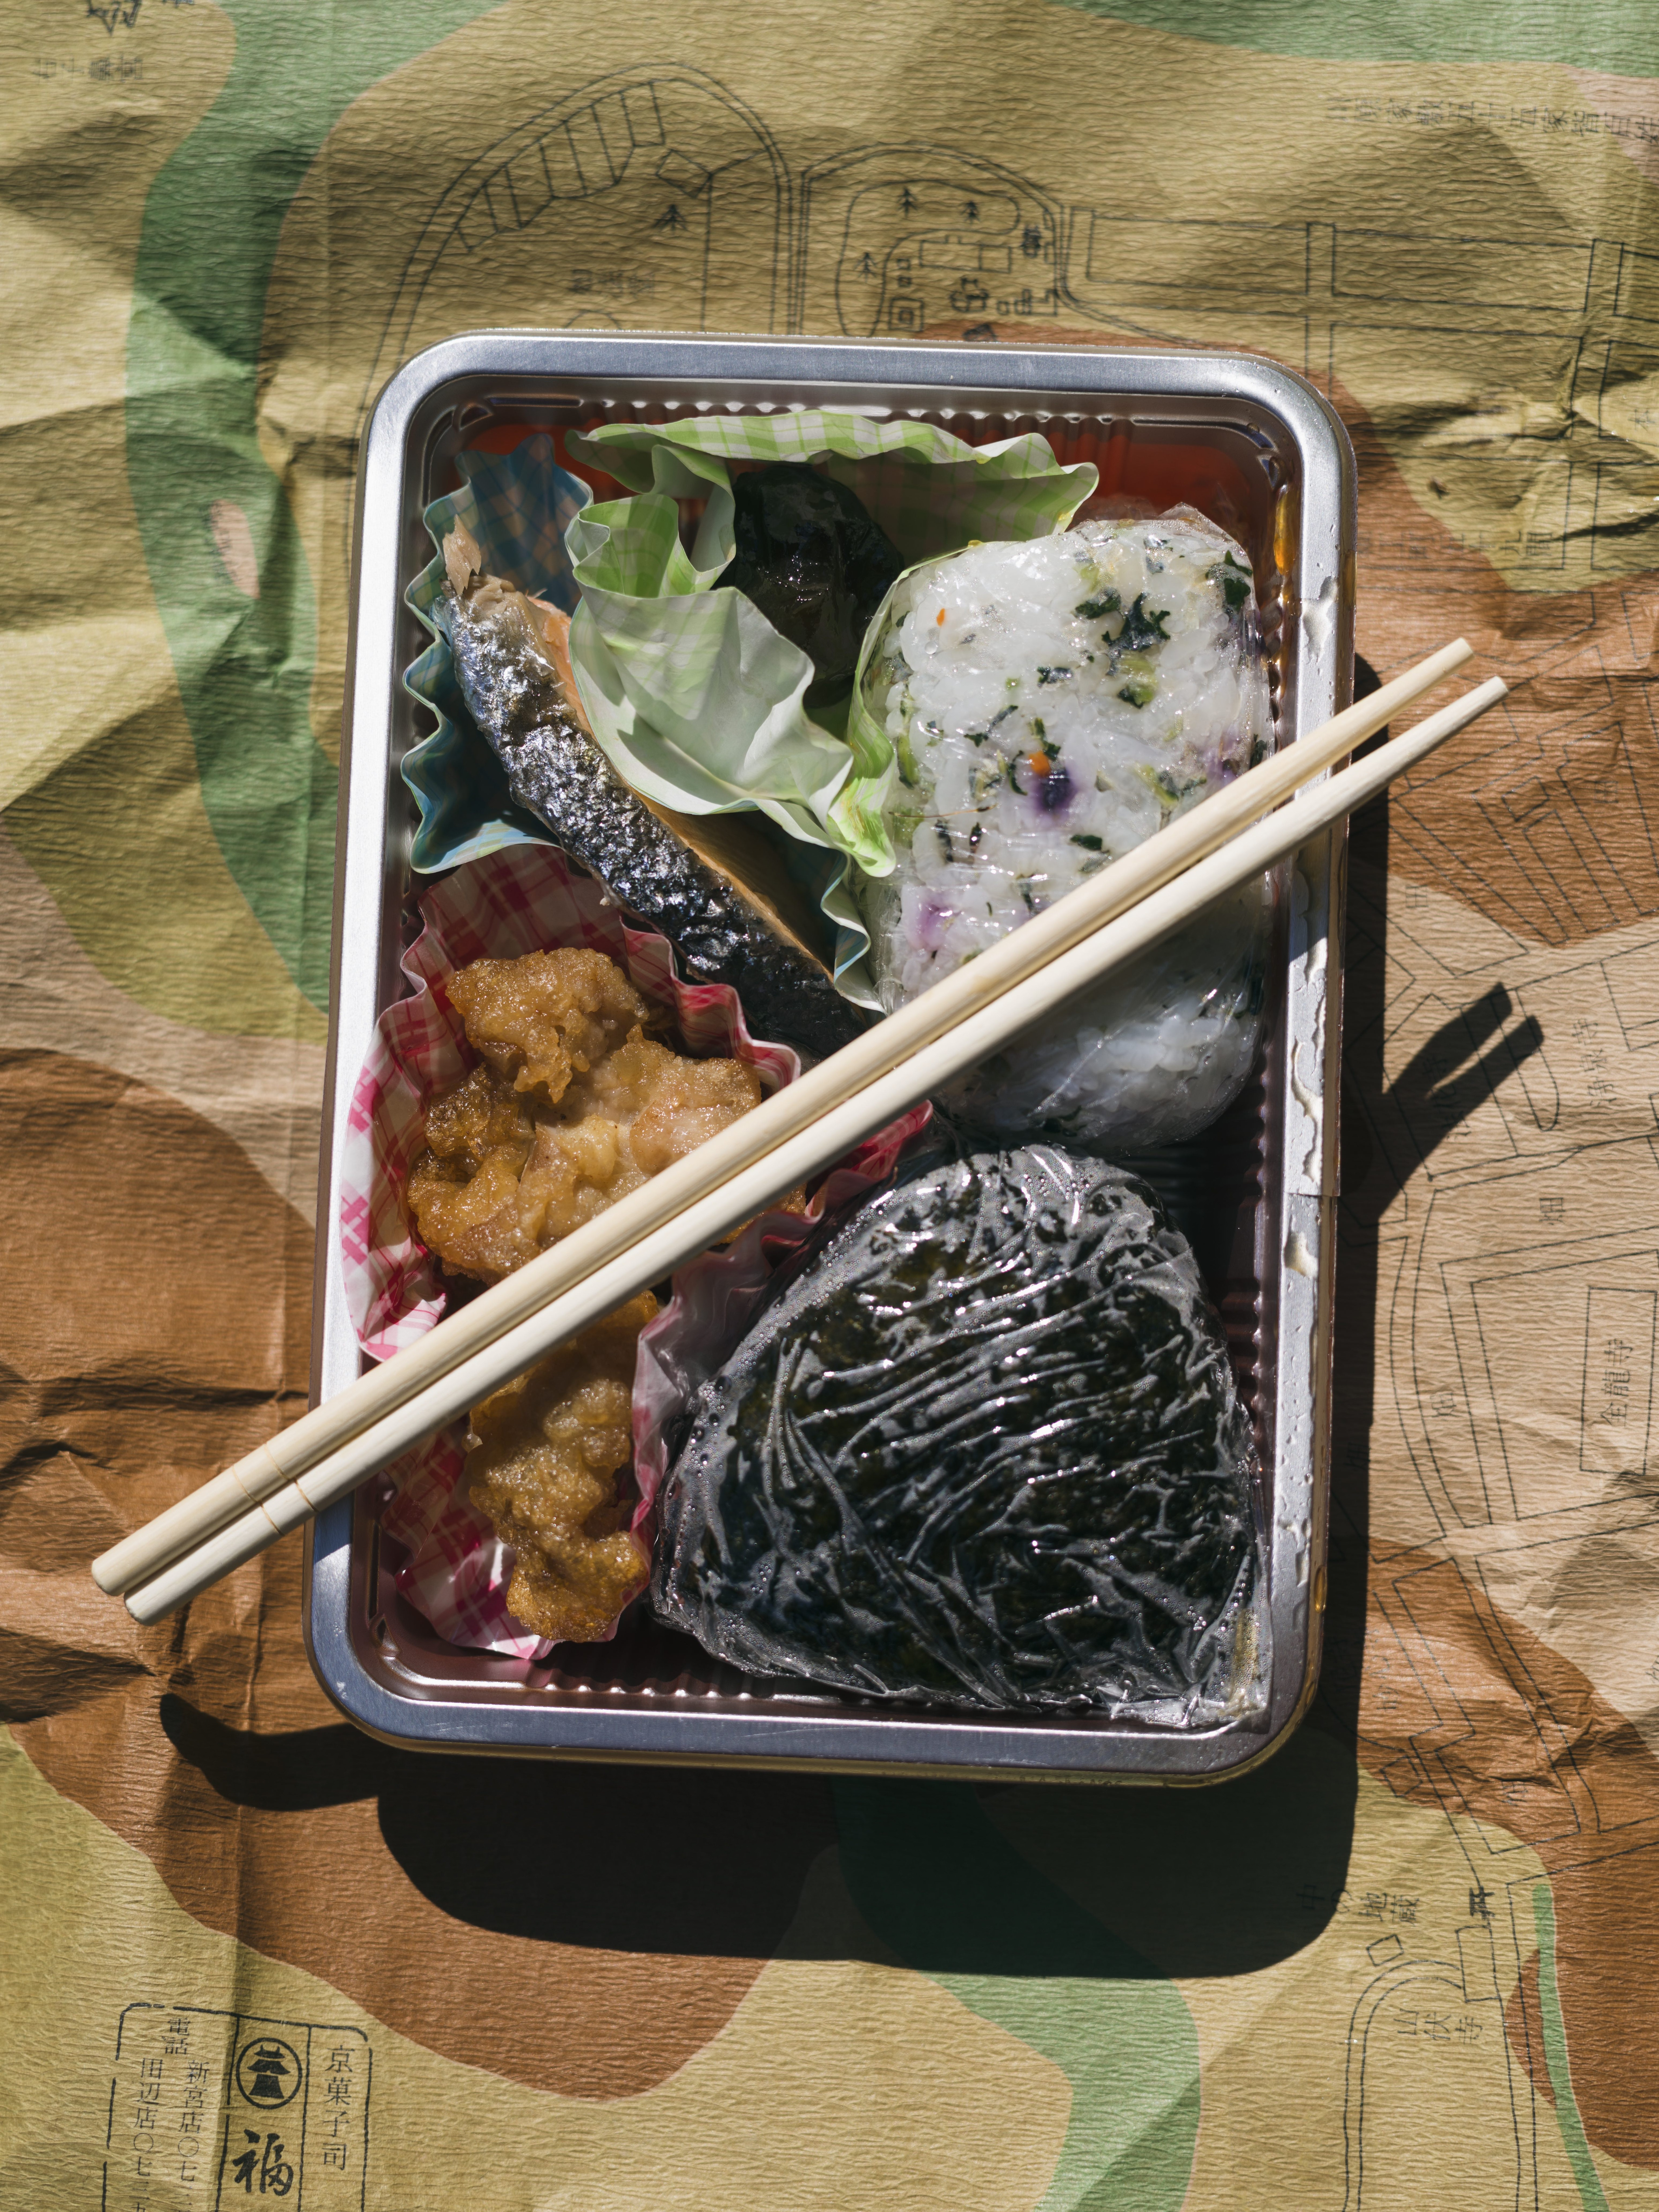 A packed lunch for the trail